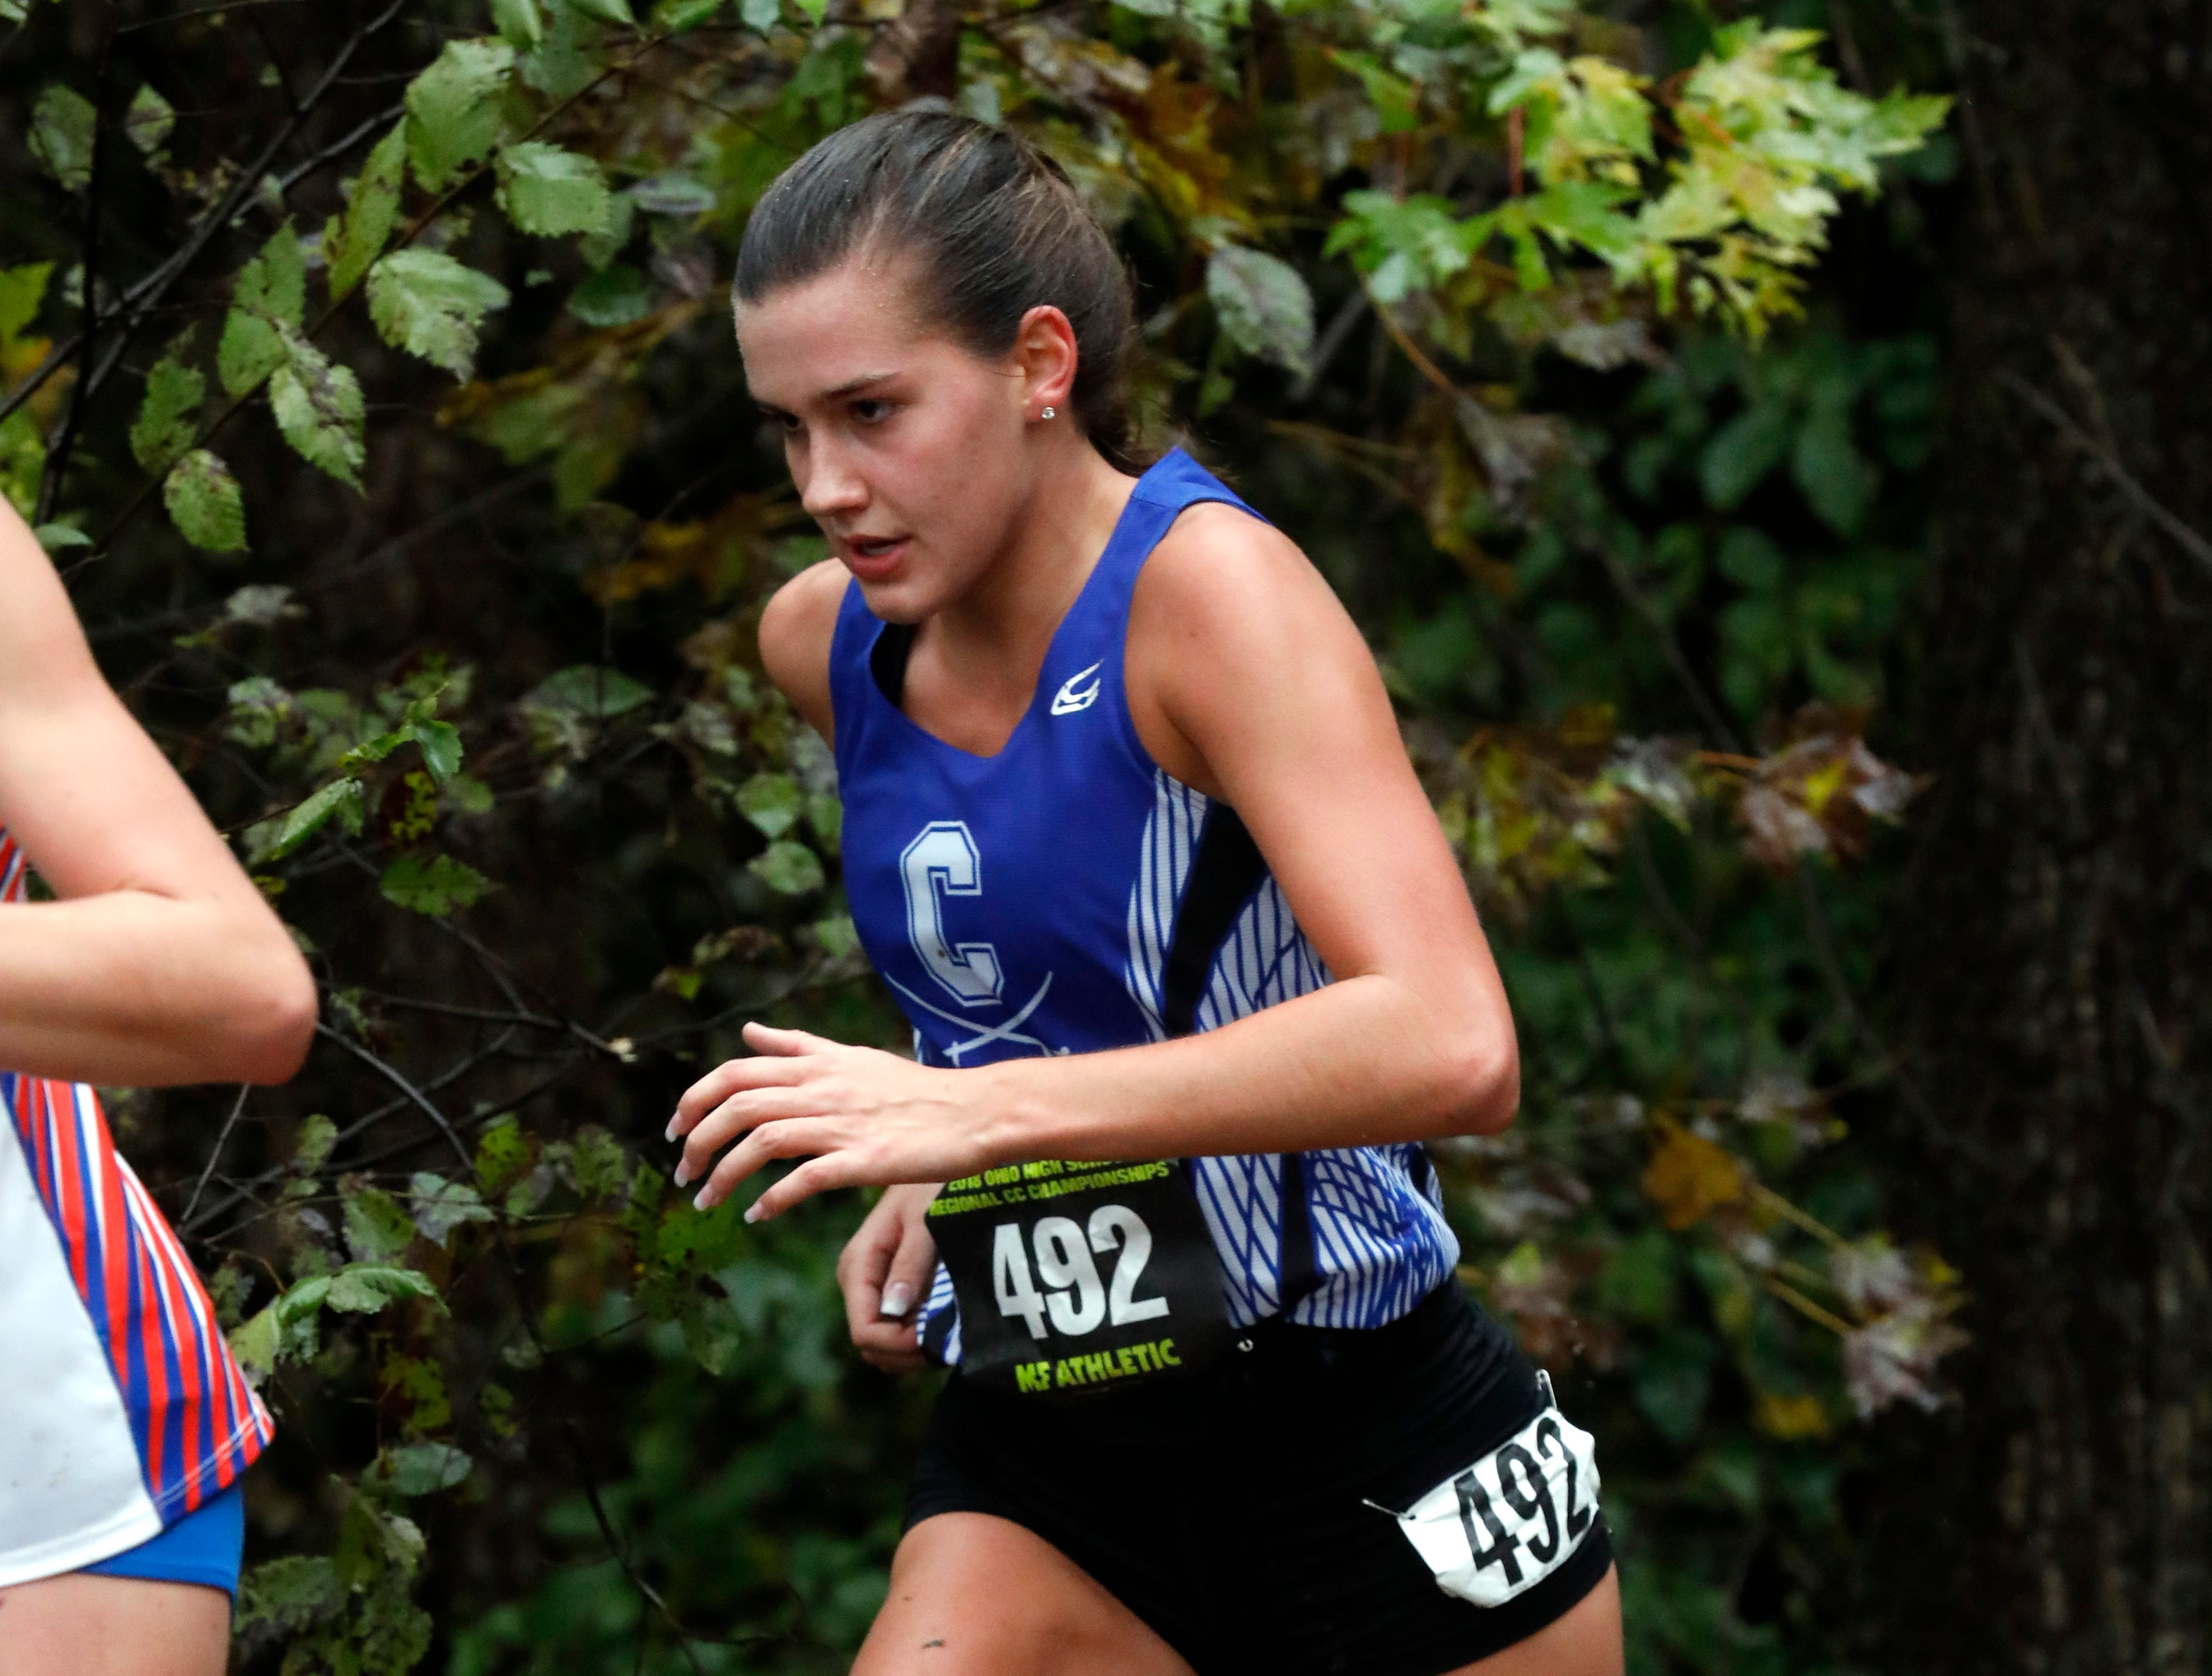 Chillicothe's Caitlyn Mauger runs in the Regional Cross Country meet Saturday, Oct. 27, 2018, at Pickerington North High School in Pickerington.